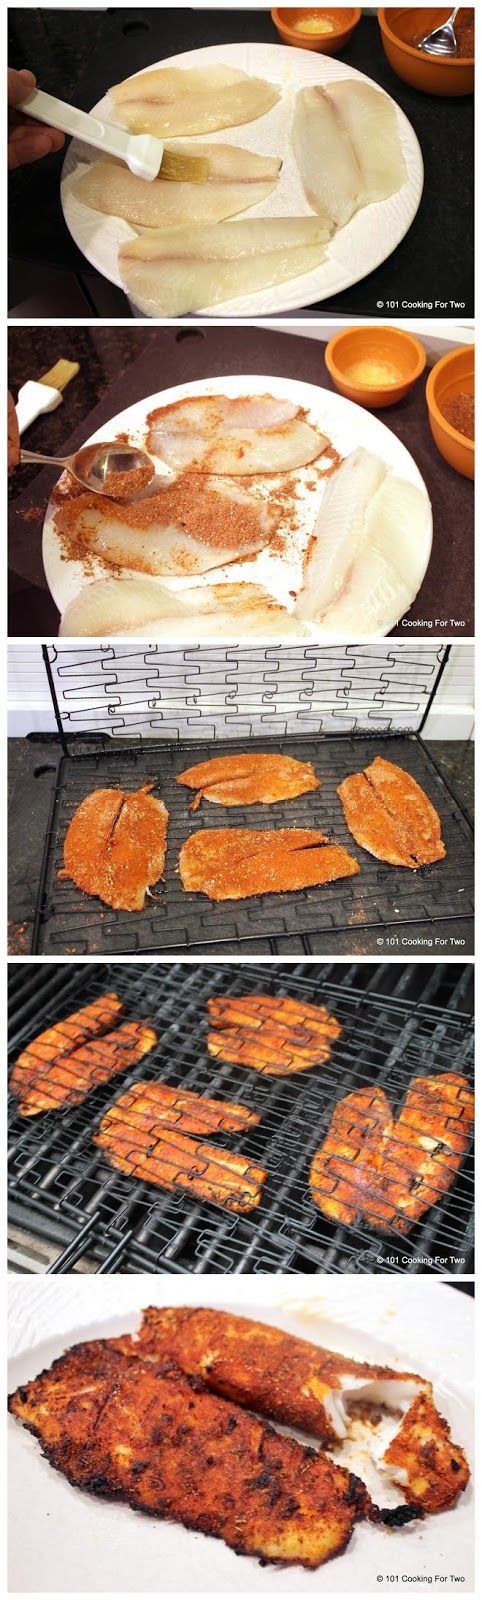 Grilled Blackened Tilapia – nice and easy blackened recipe.  The brown sugar adds a hint of sweetness.  I tried on salmon too and